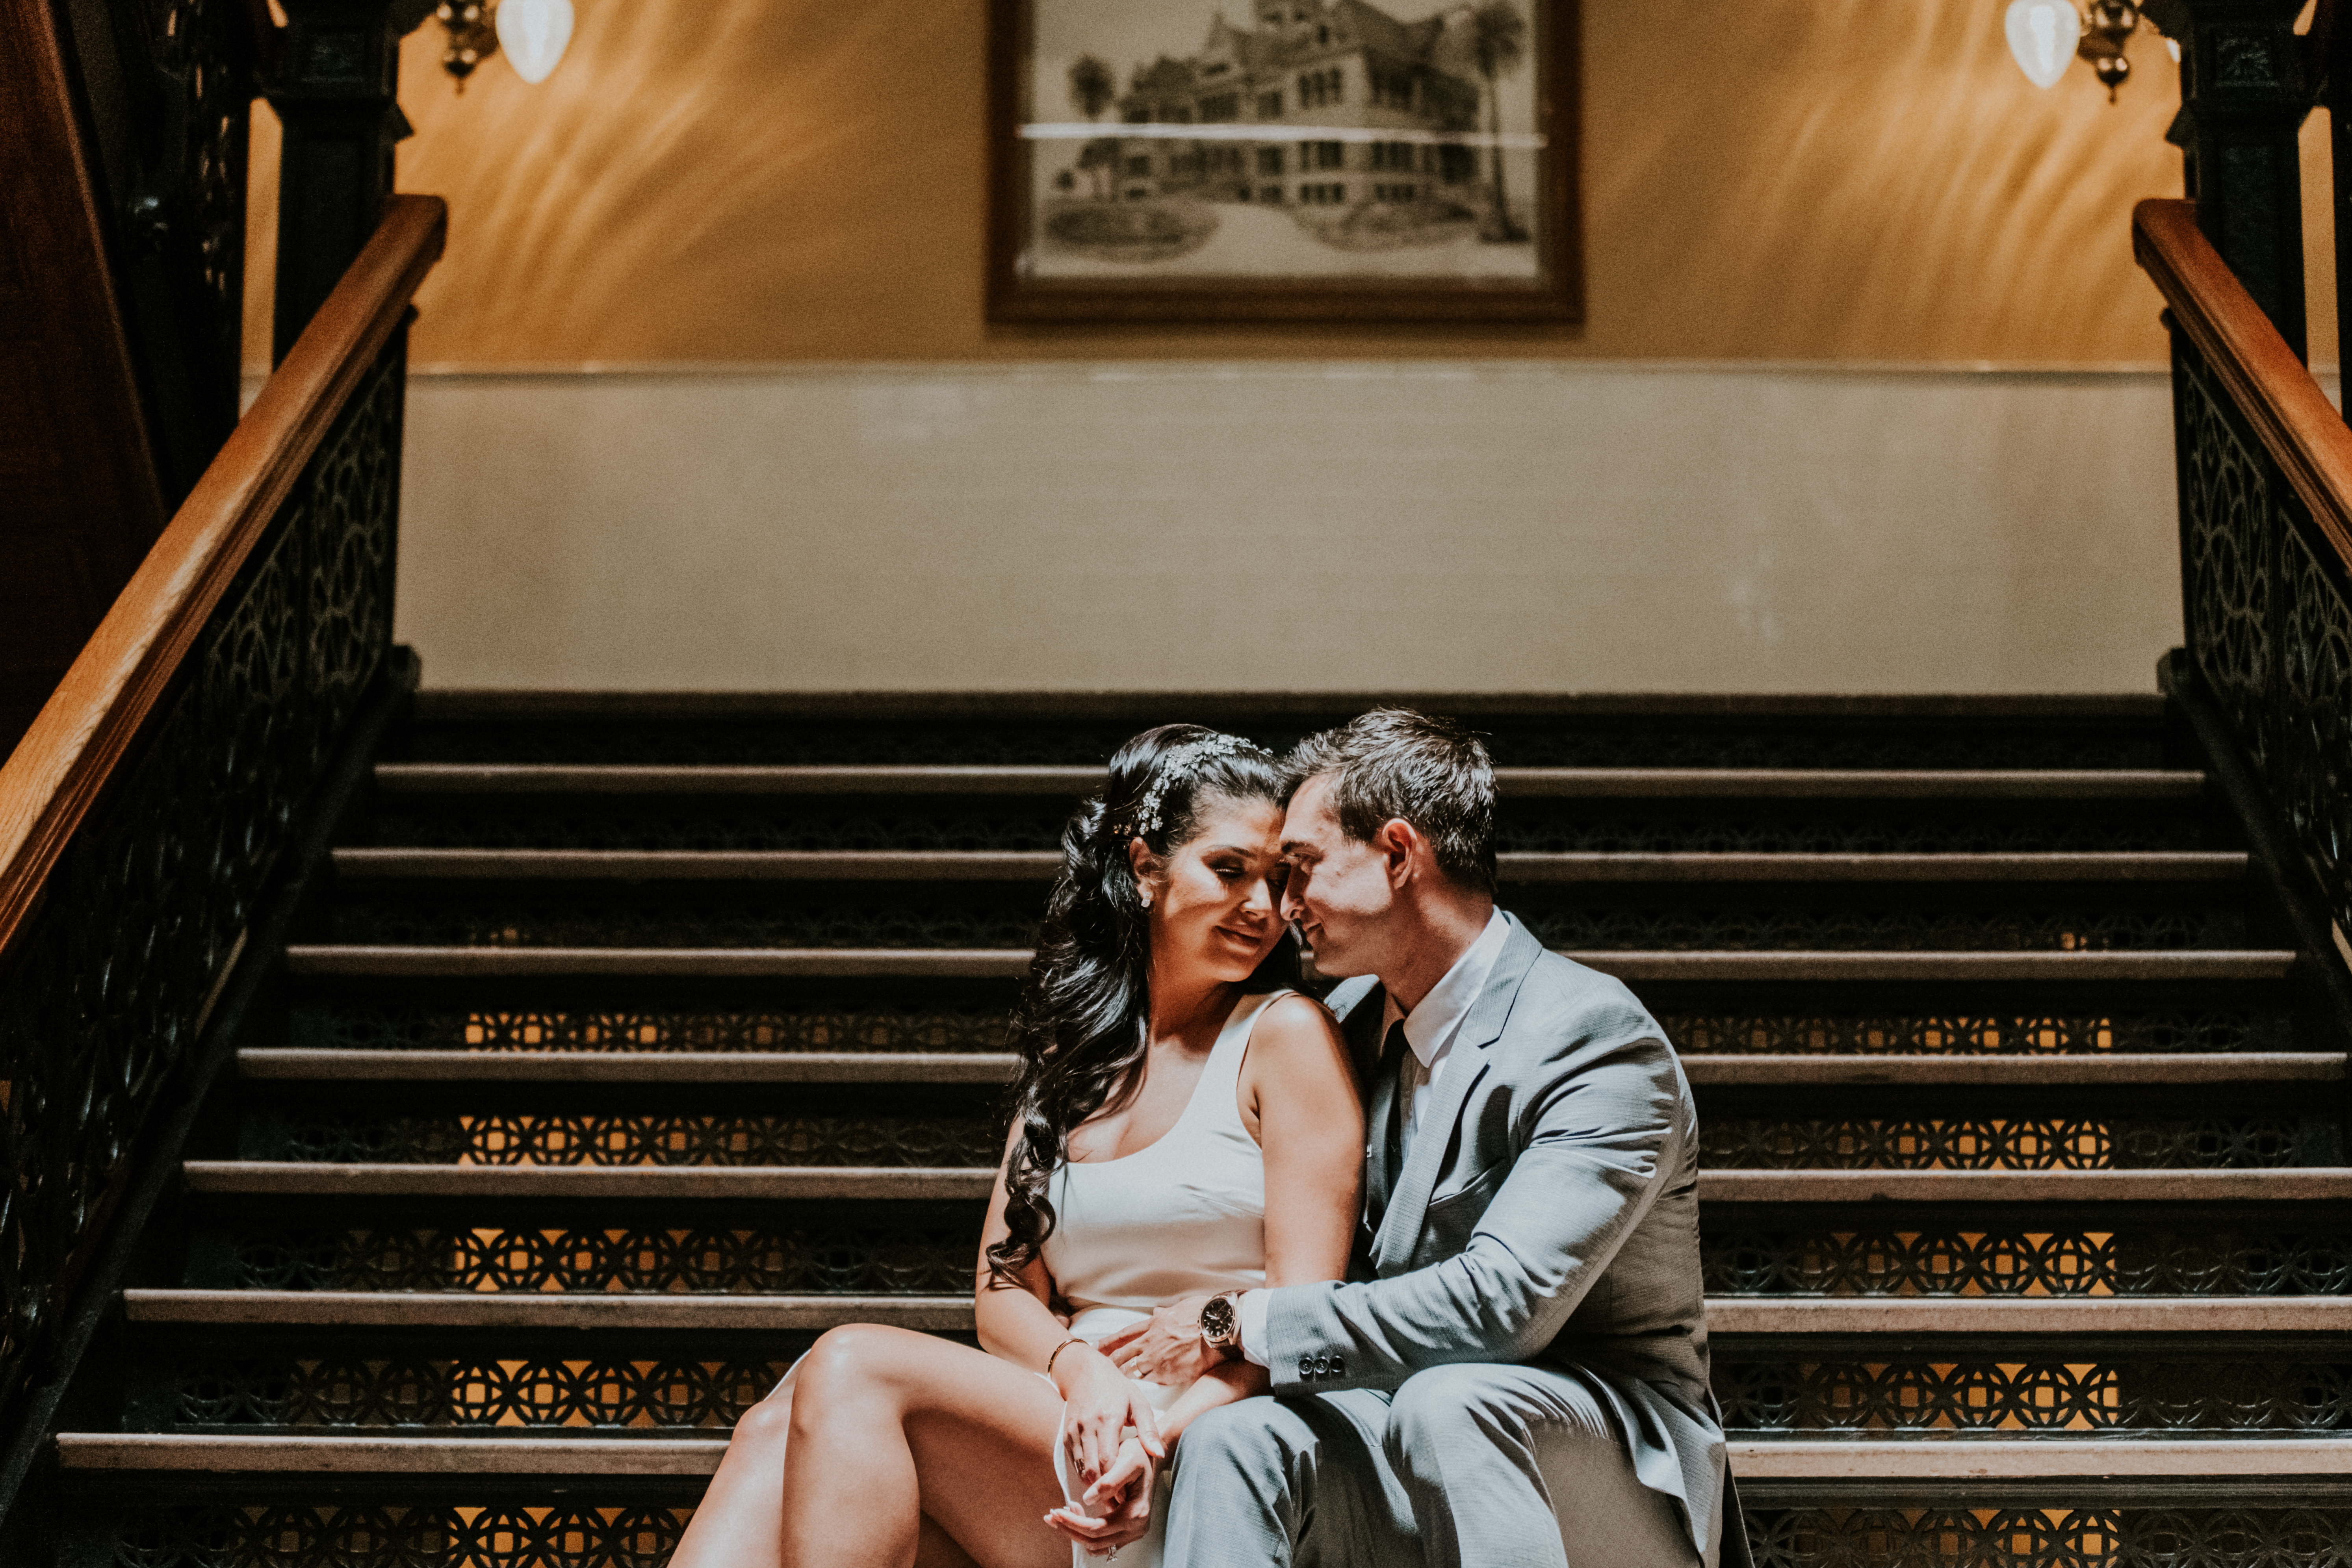 bride and groom posed on stairs courthouse small wedding day photography california wedding photogra